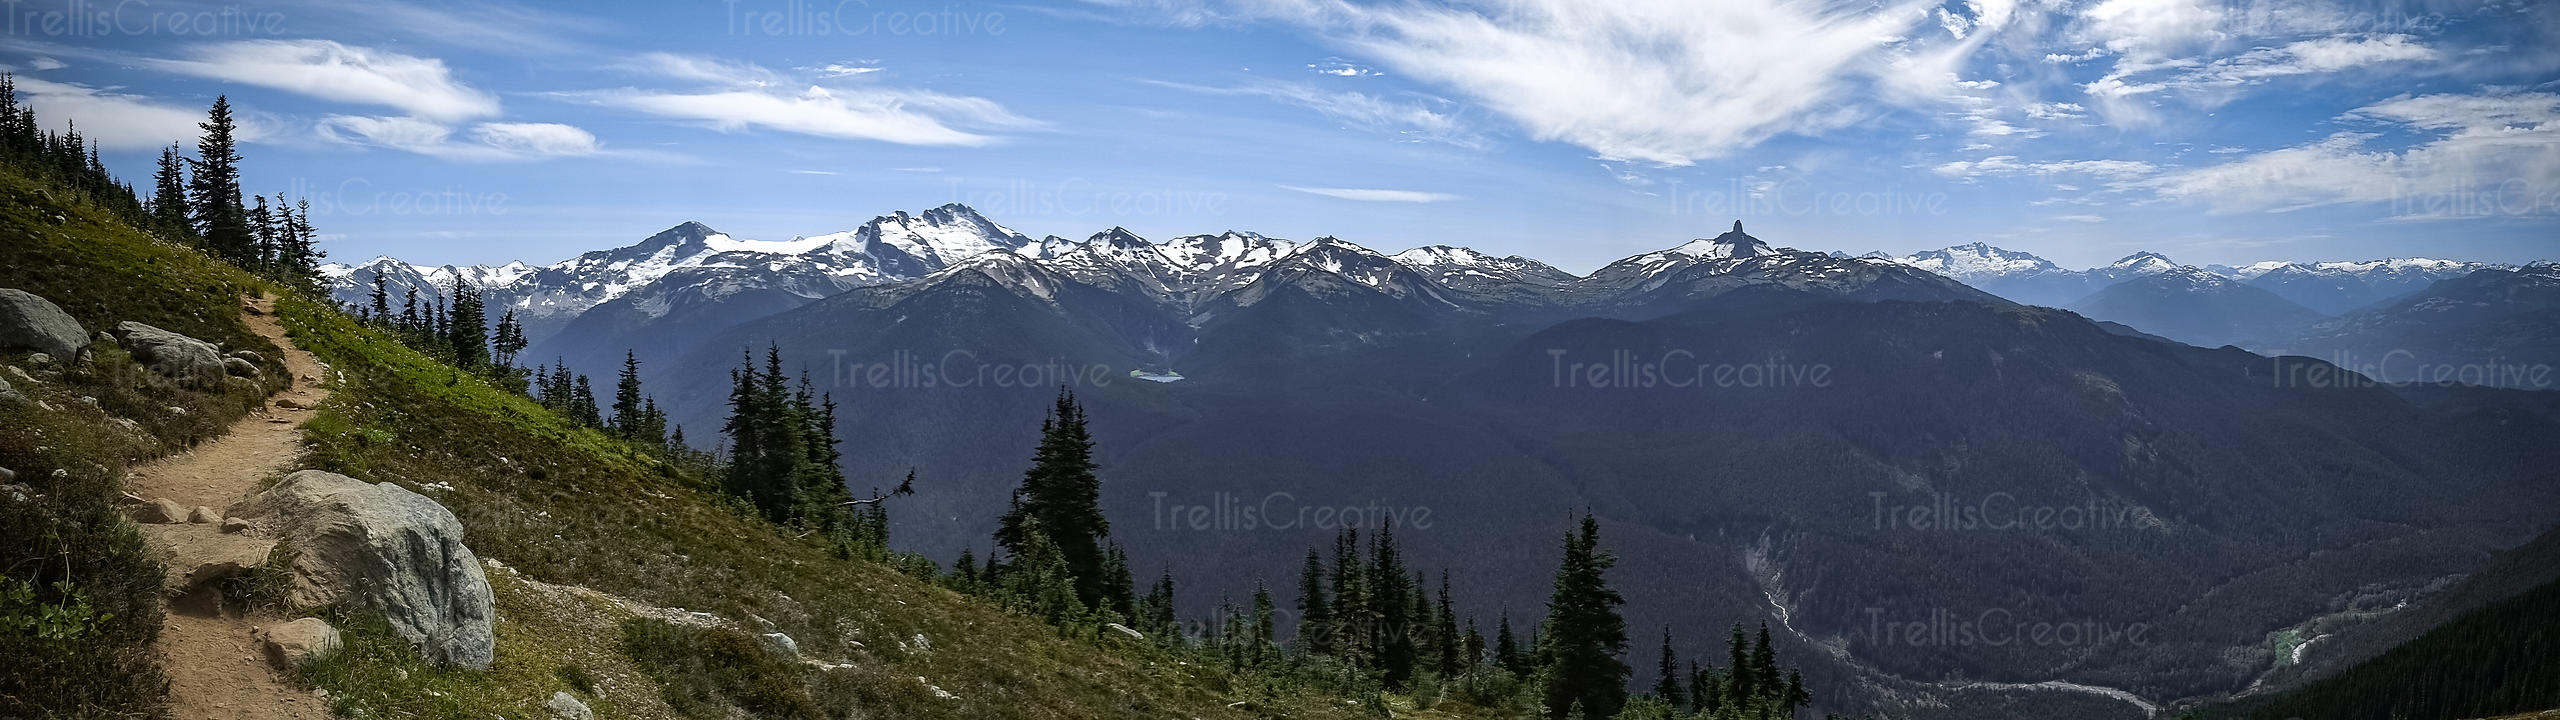 Panoramic view of a mountaintip hiking trail, Blackcomb Mountain, Whistler, Canada.